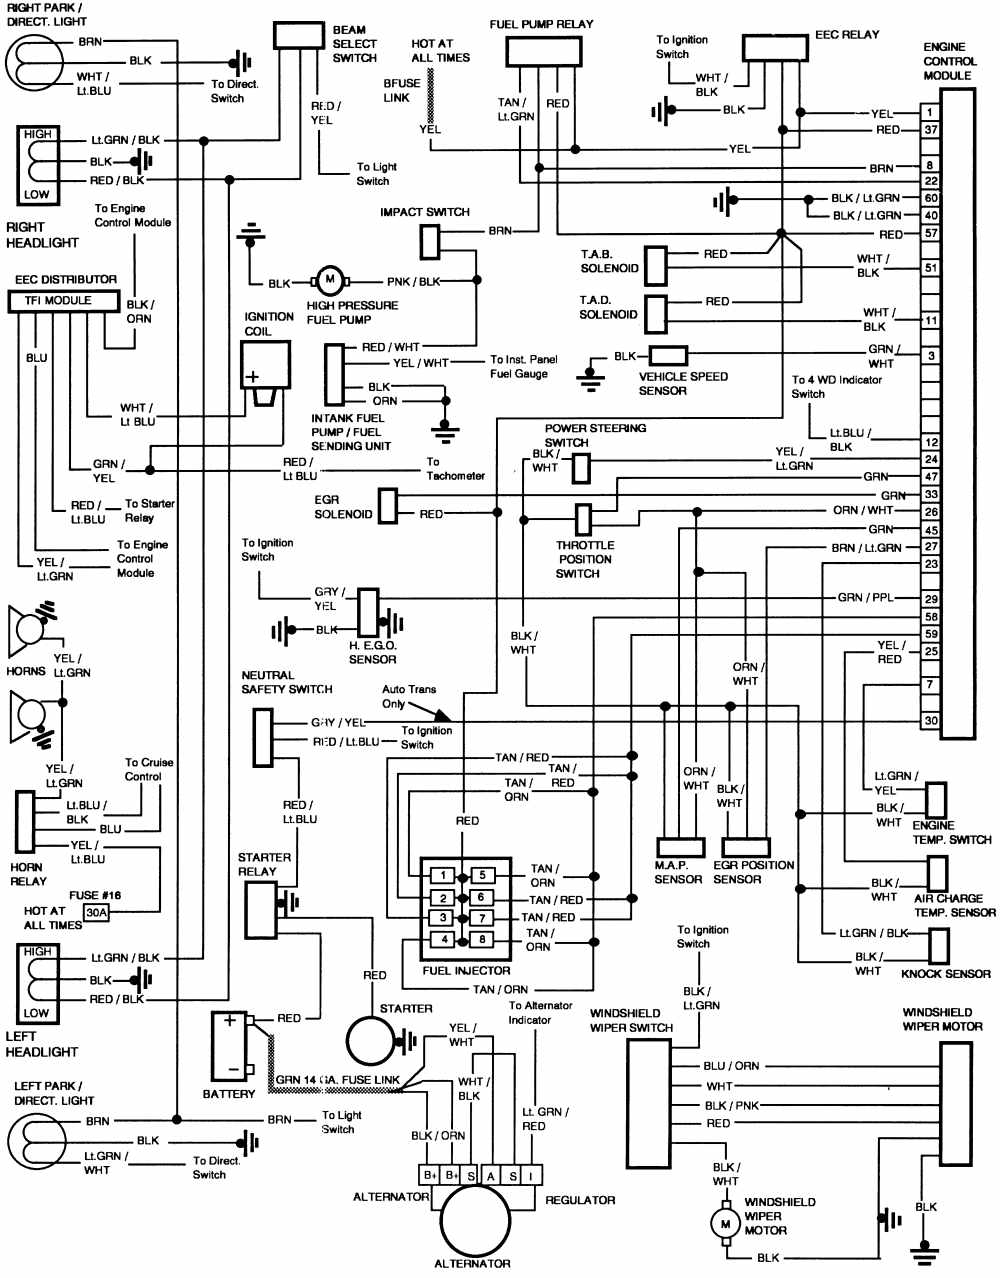 Ford+F 250+1986+Engine+Control+Module+Wiring+Diagram cadillac deville stereo wiring diagram cadillac deville speakers 2002 cadillac deville stereo wiring diagram at edmiracle.co